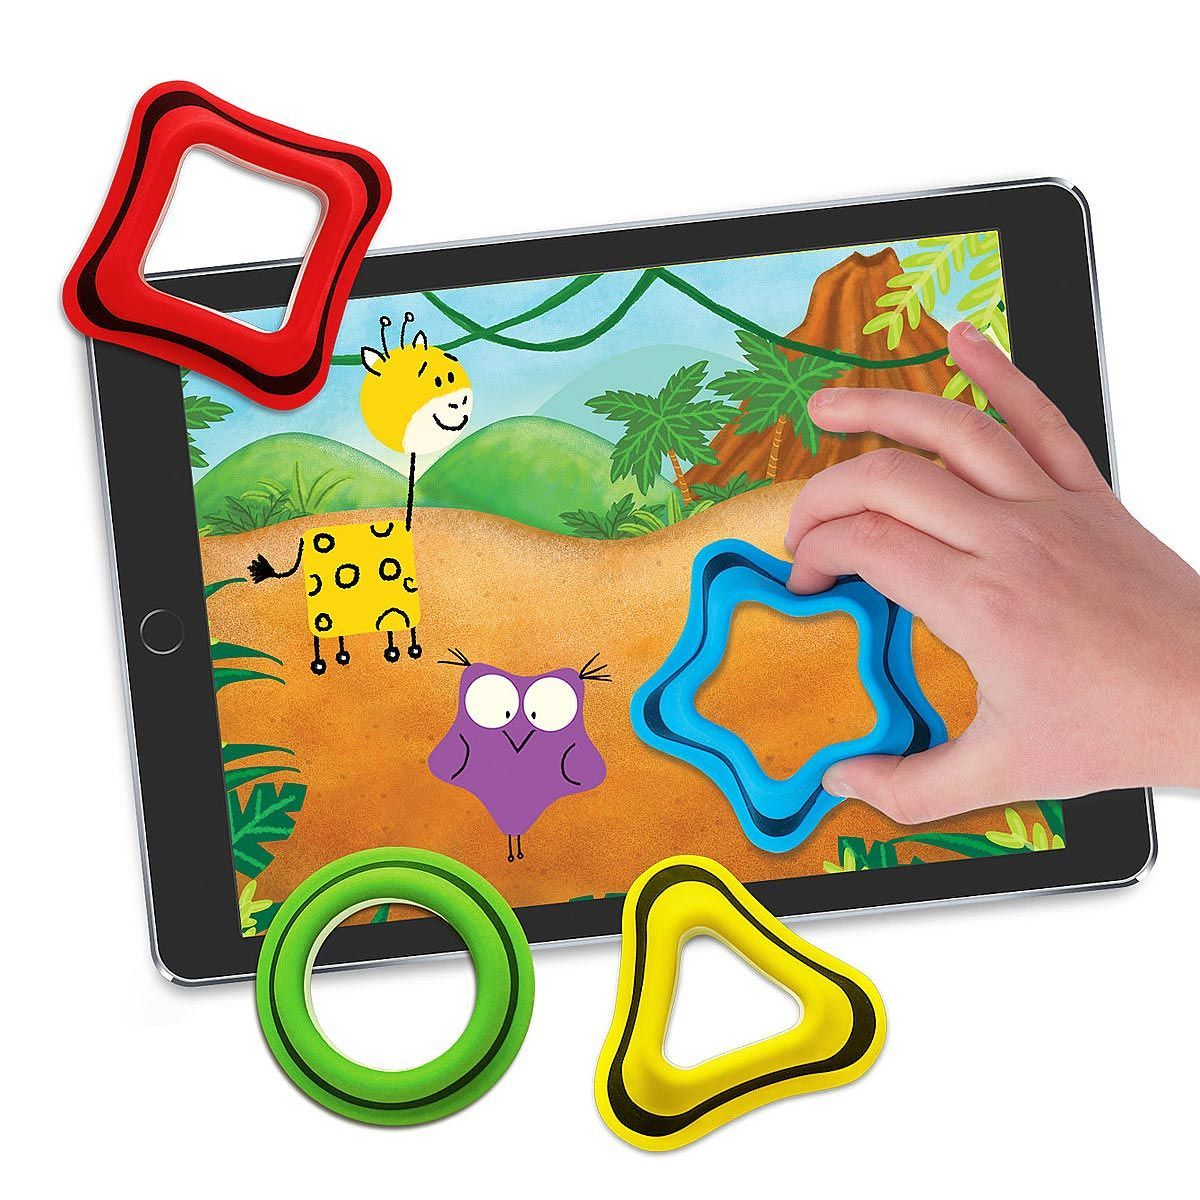 Shapes Tablet Game geometry game Learning games for